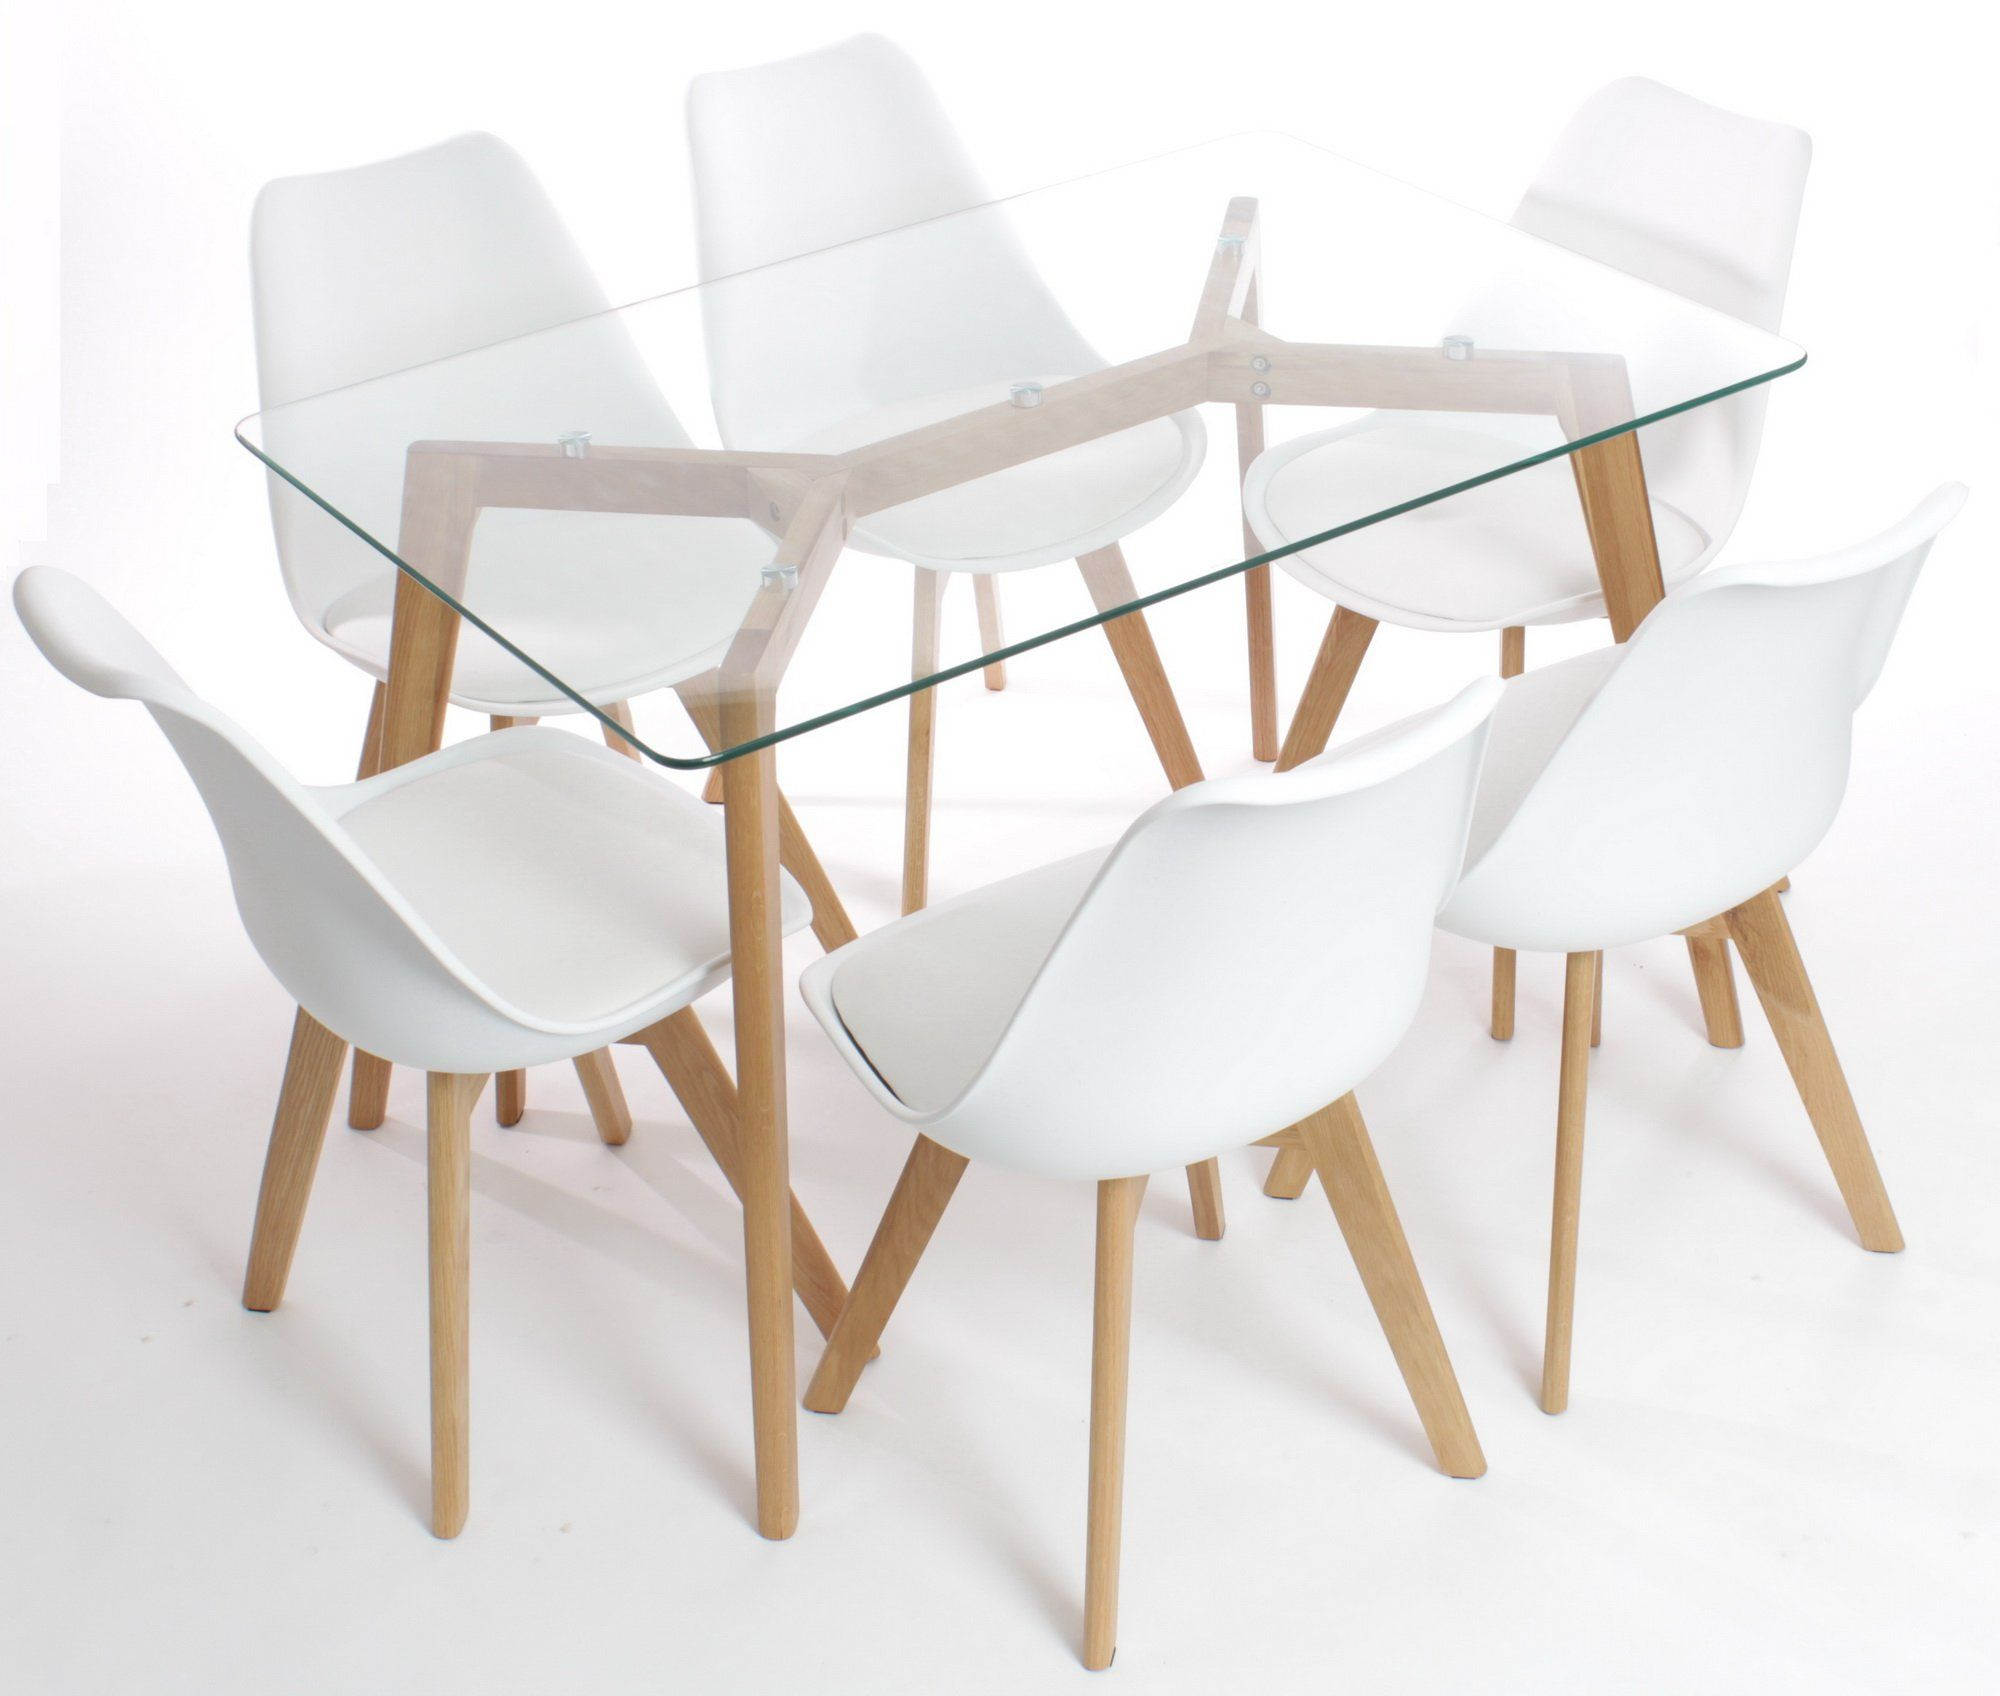 Charles Jacobs Dining Table with Six White Chairs Set Solid Wood ...